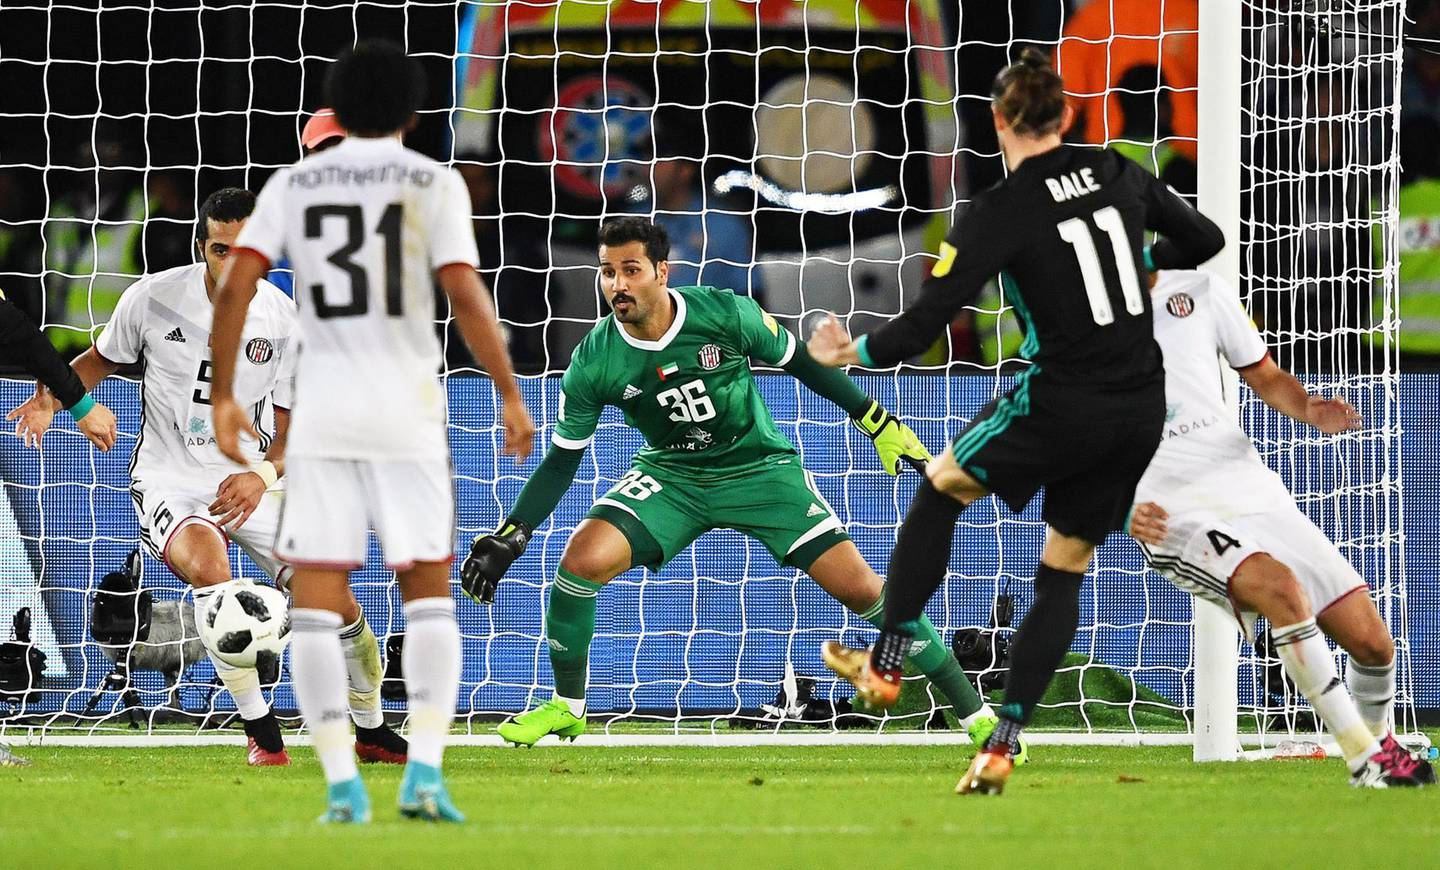 epa06387773 Gareth Bale (2-R) of Real Madrid scores the winning goal during the FIFA Club World Cup semi final soccer match between Al Jazira Club and Real Madrid in Abu Dhabi, United Arab Emirates, 13 December 2017. Real Madrid won 2-1.  EPA/MARTIN DOKOUPIL